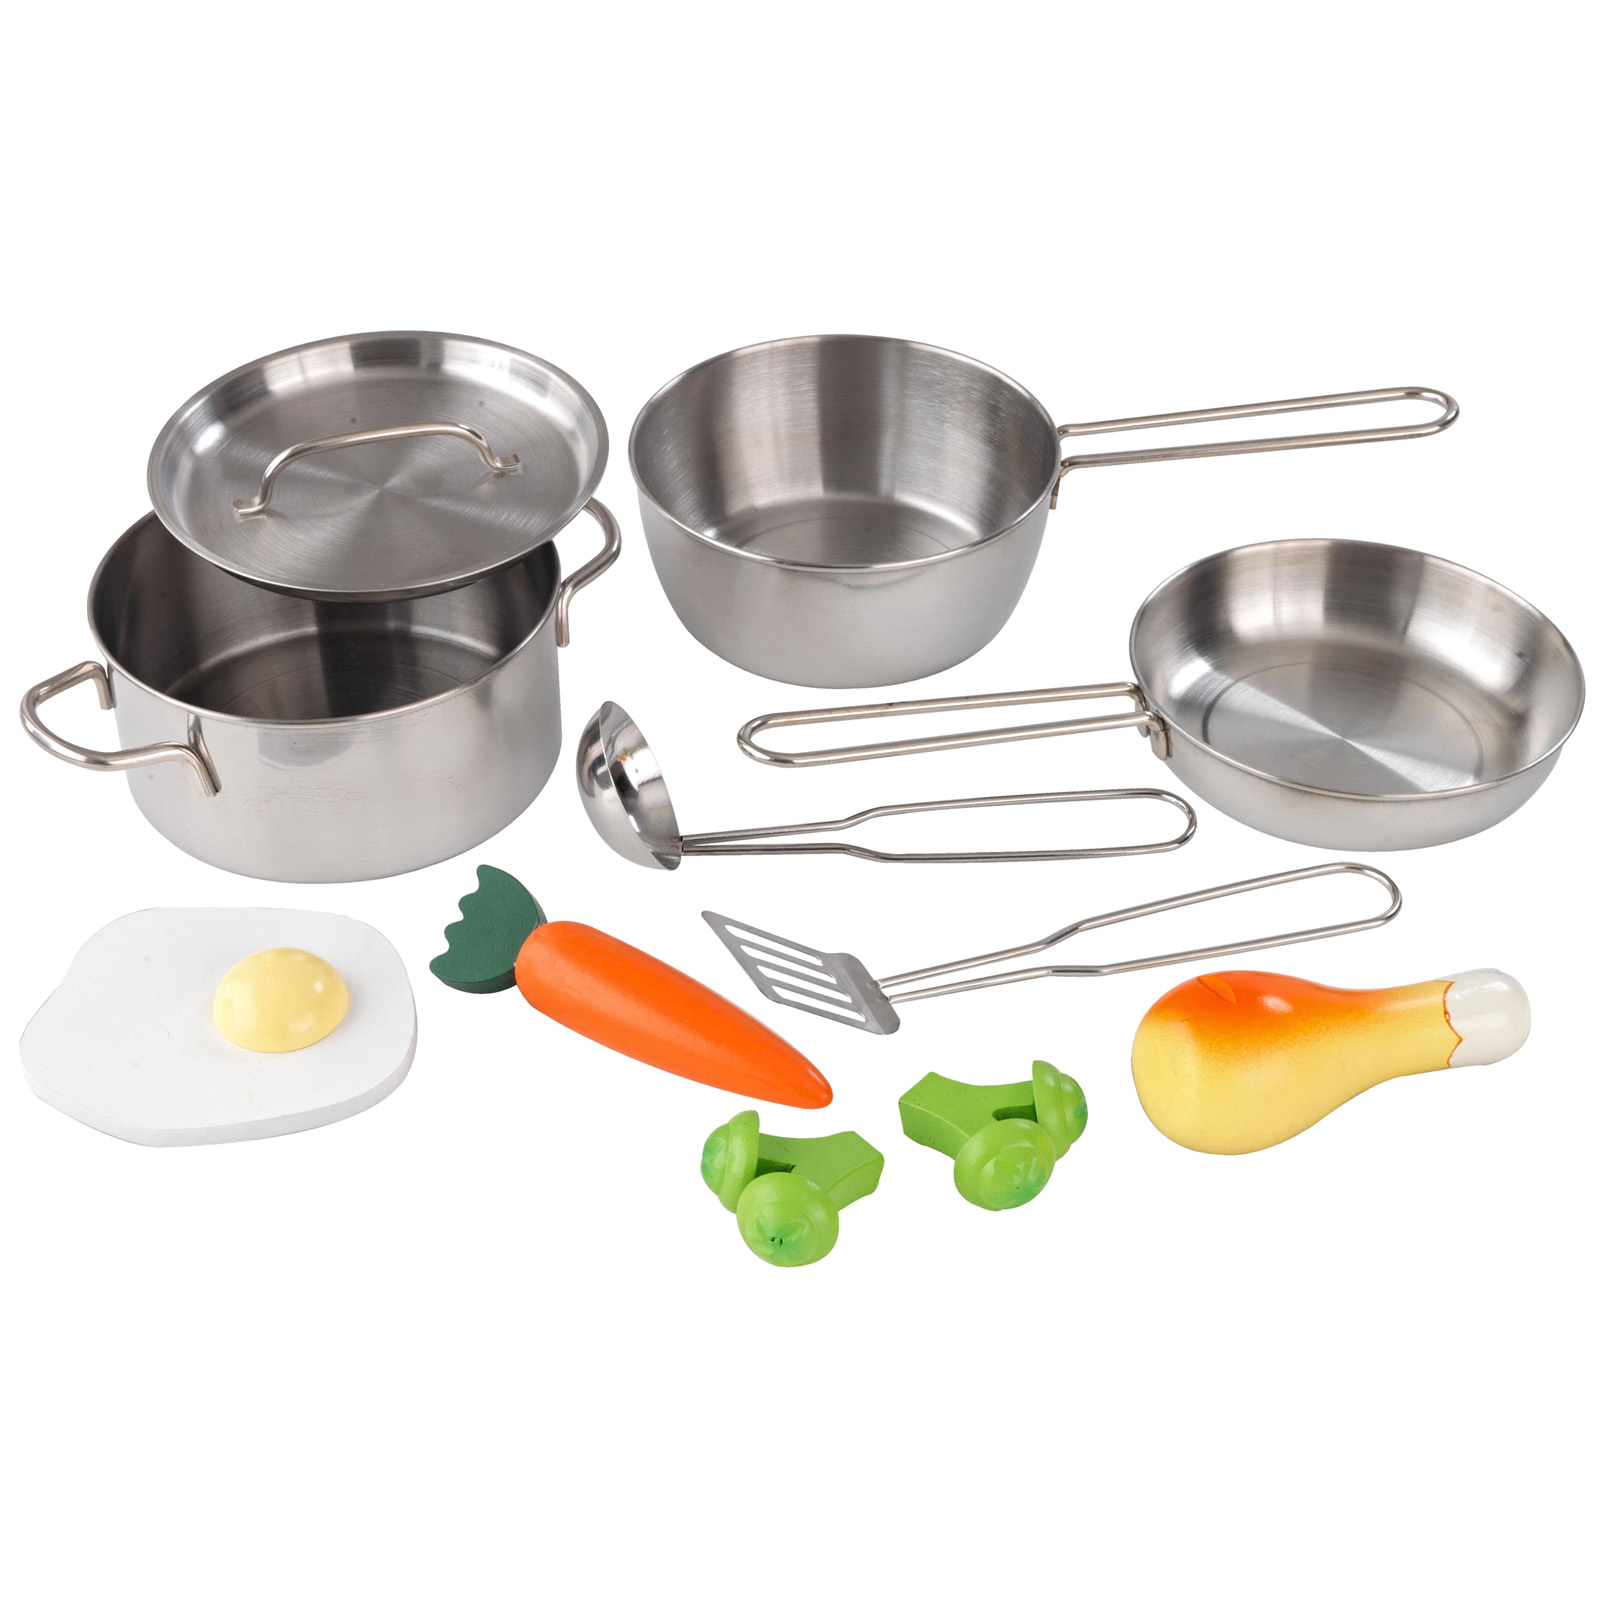 Kidkraft metal accessories set 63186 play kitchen for Articles de cuisine ricardo